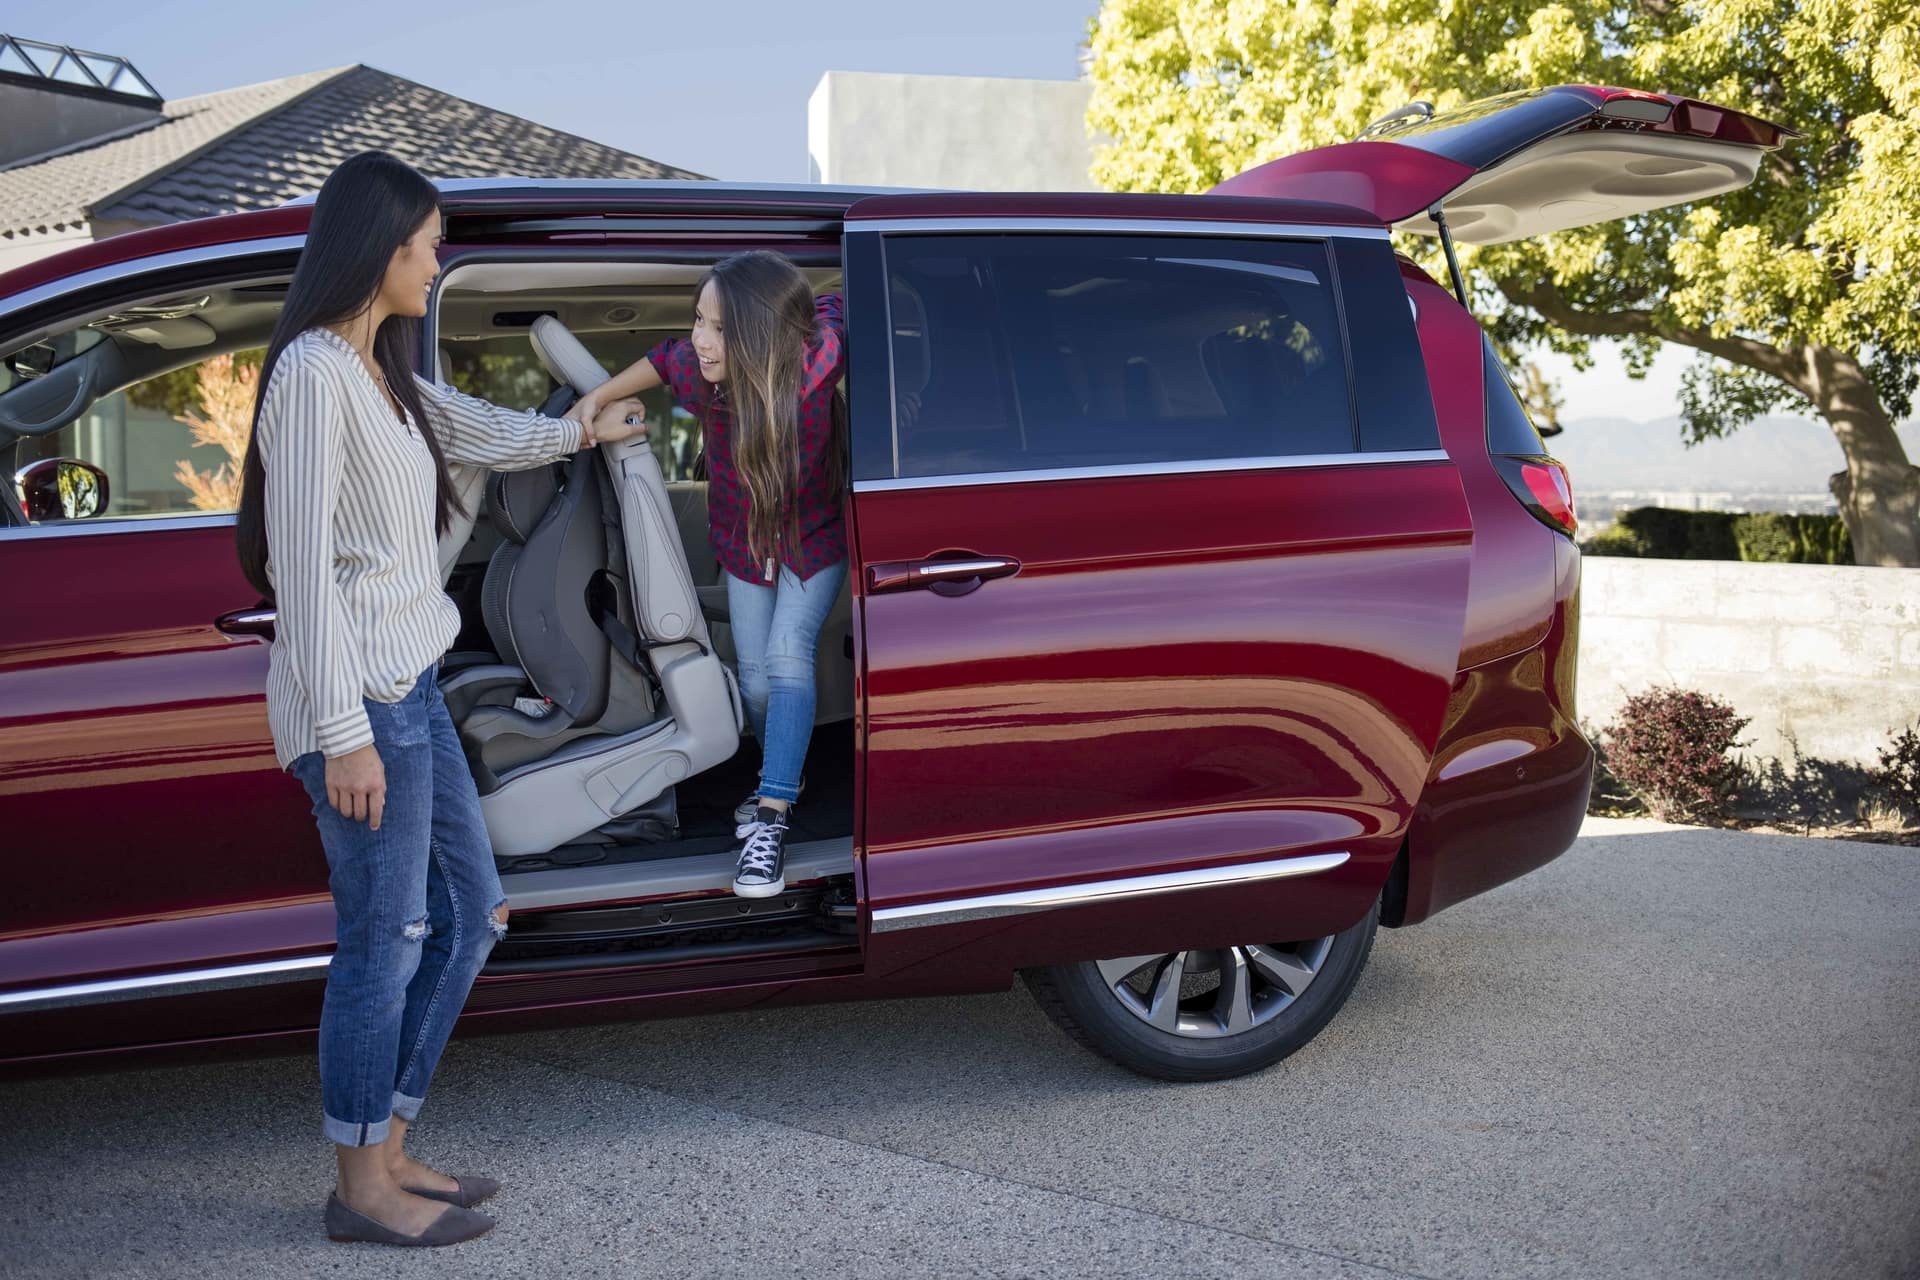 2019 Chrysler Pacifica Child getting out of van